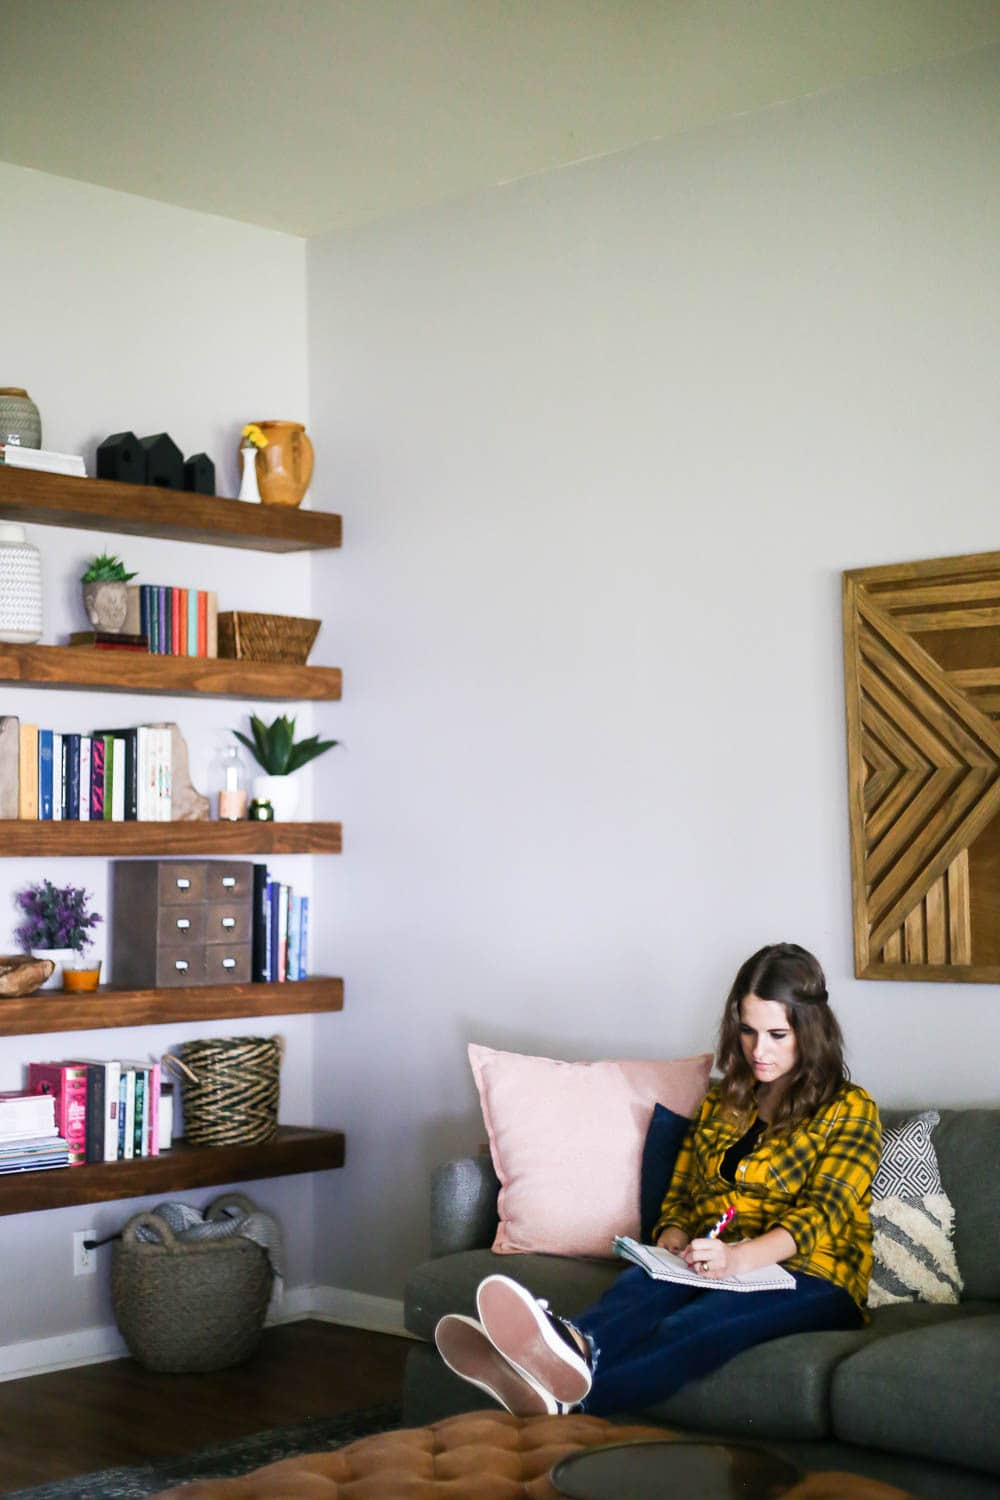 living room with floating shelves and woman on sofa